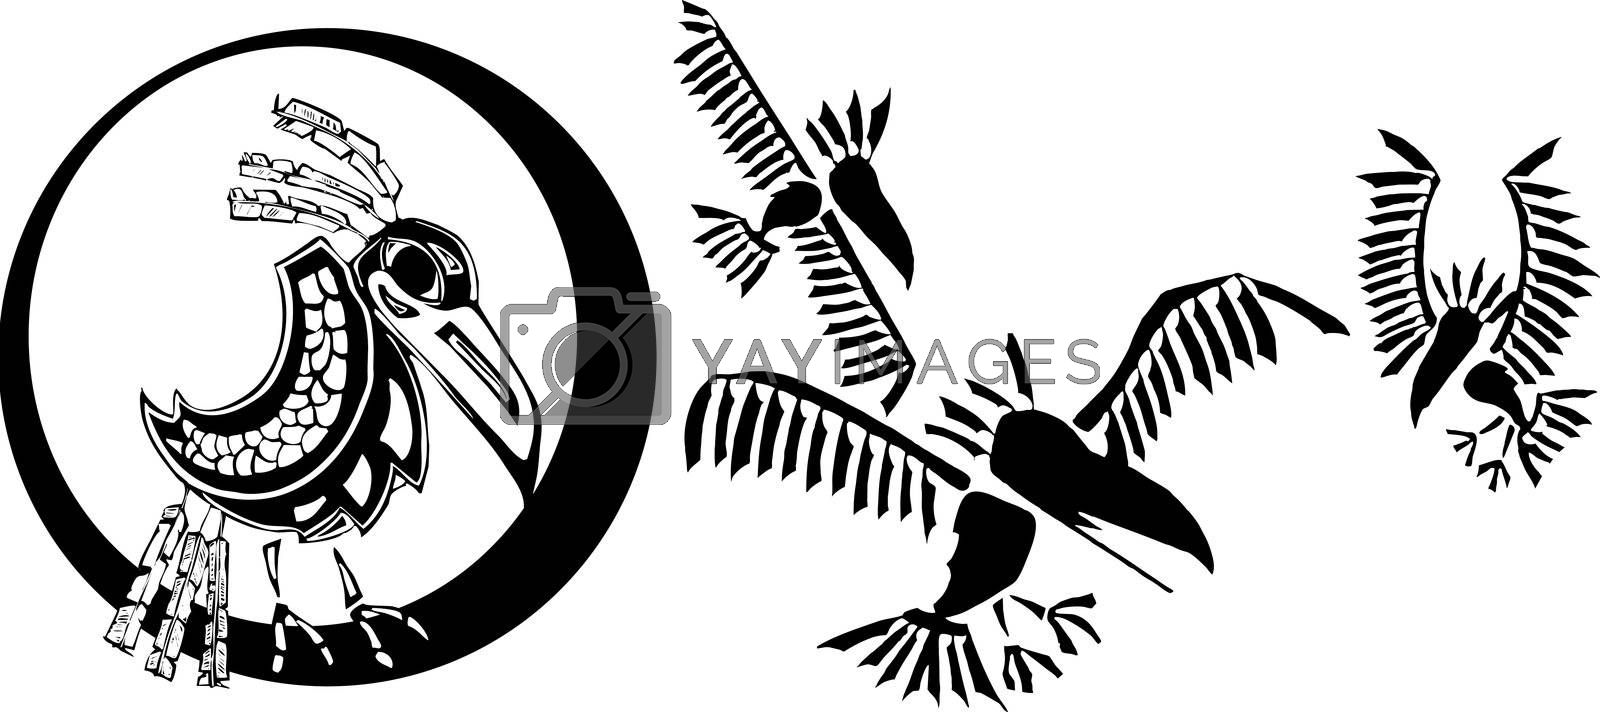 Raven and his clan rendered in Northwest Coast Native Style.